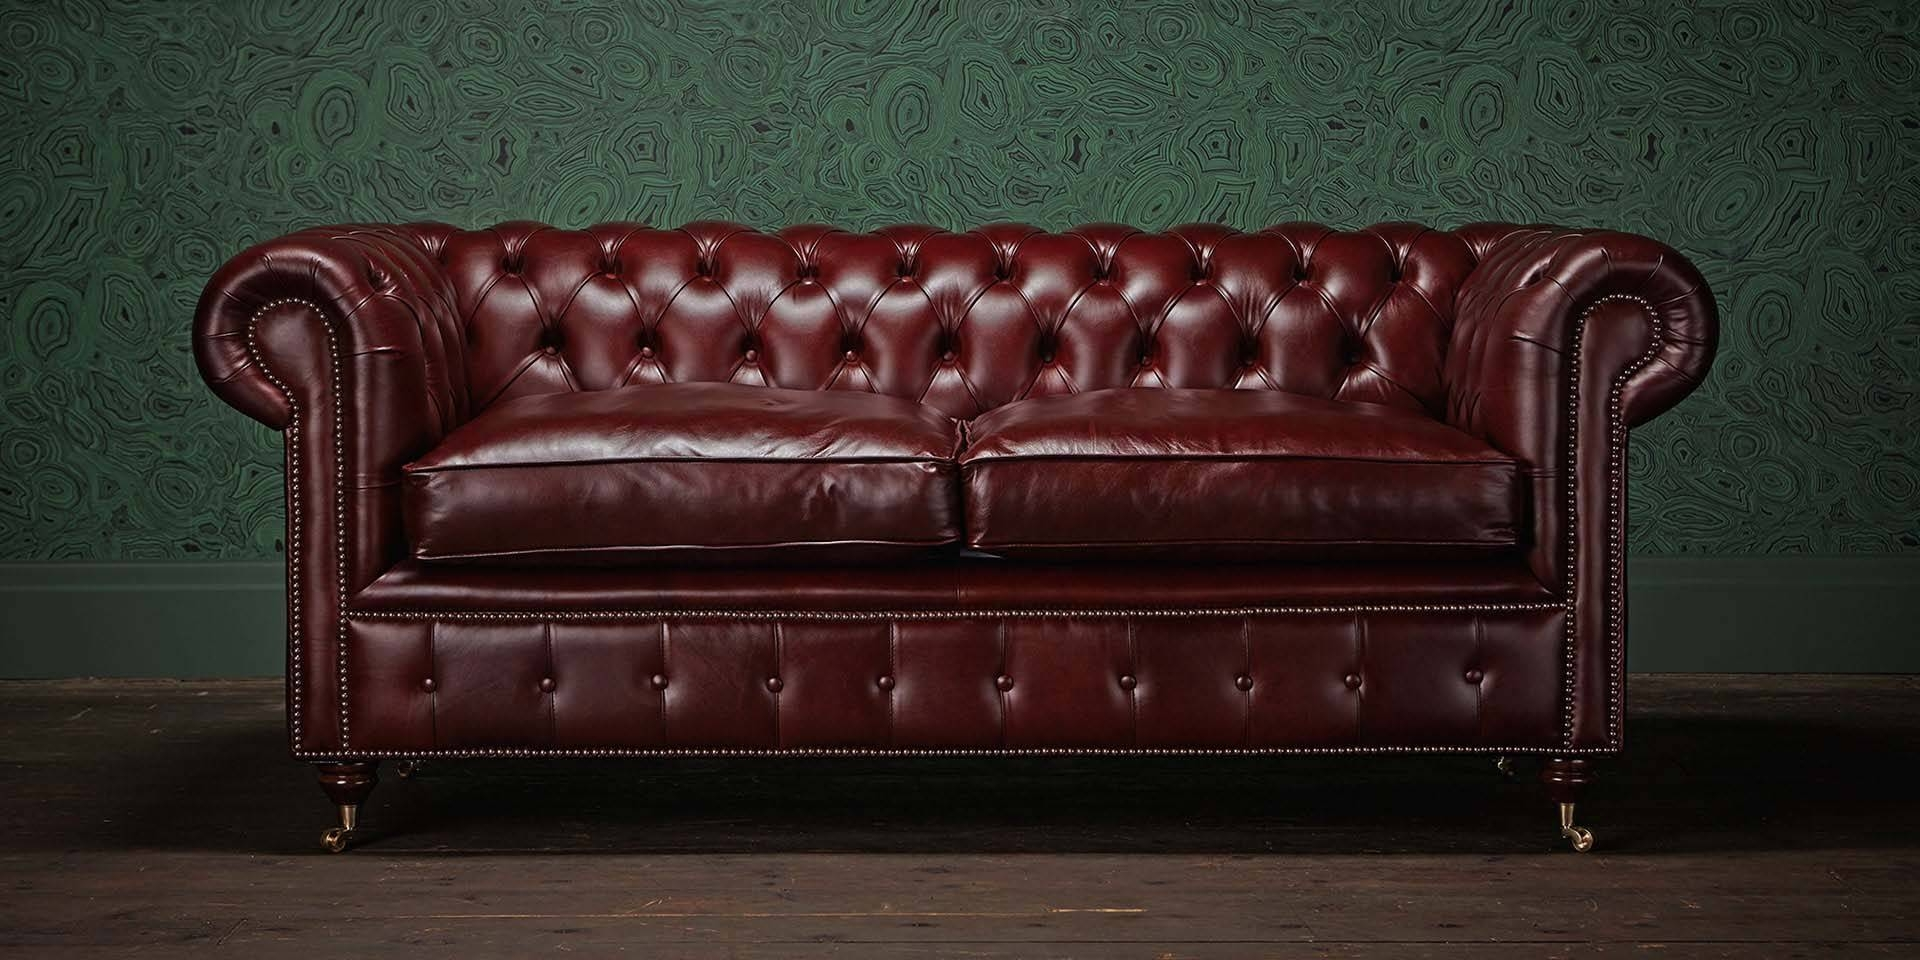 Chesterfields Of England | The Original Chesterfield Company for Chesterfield Furniture (Image 15 of 30)